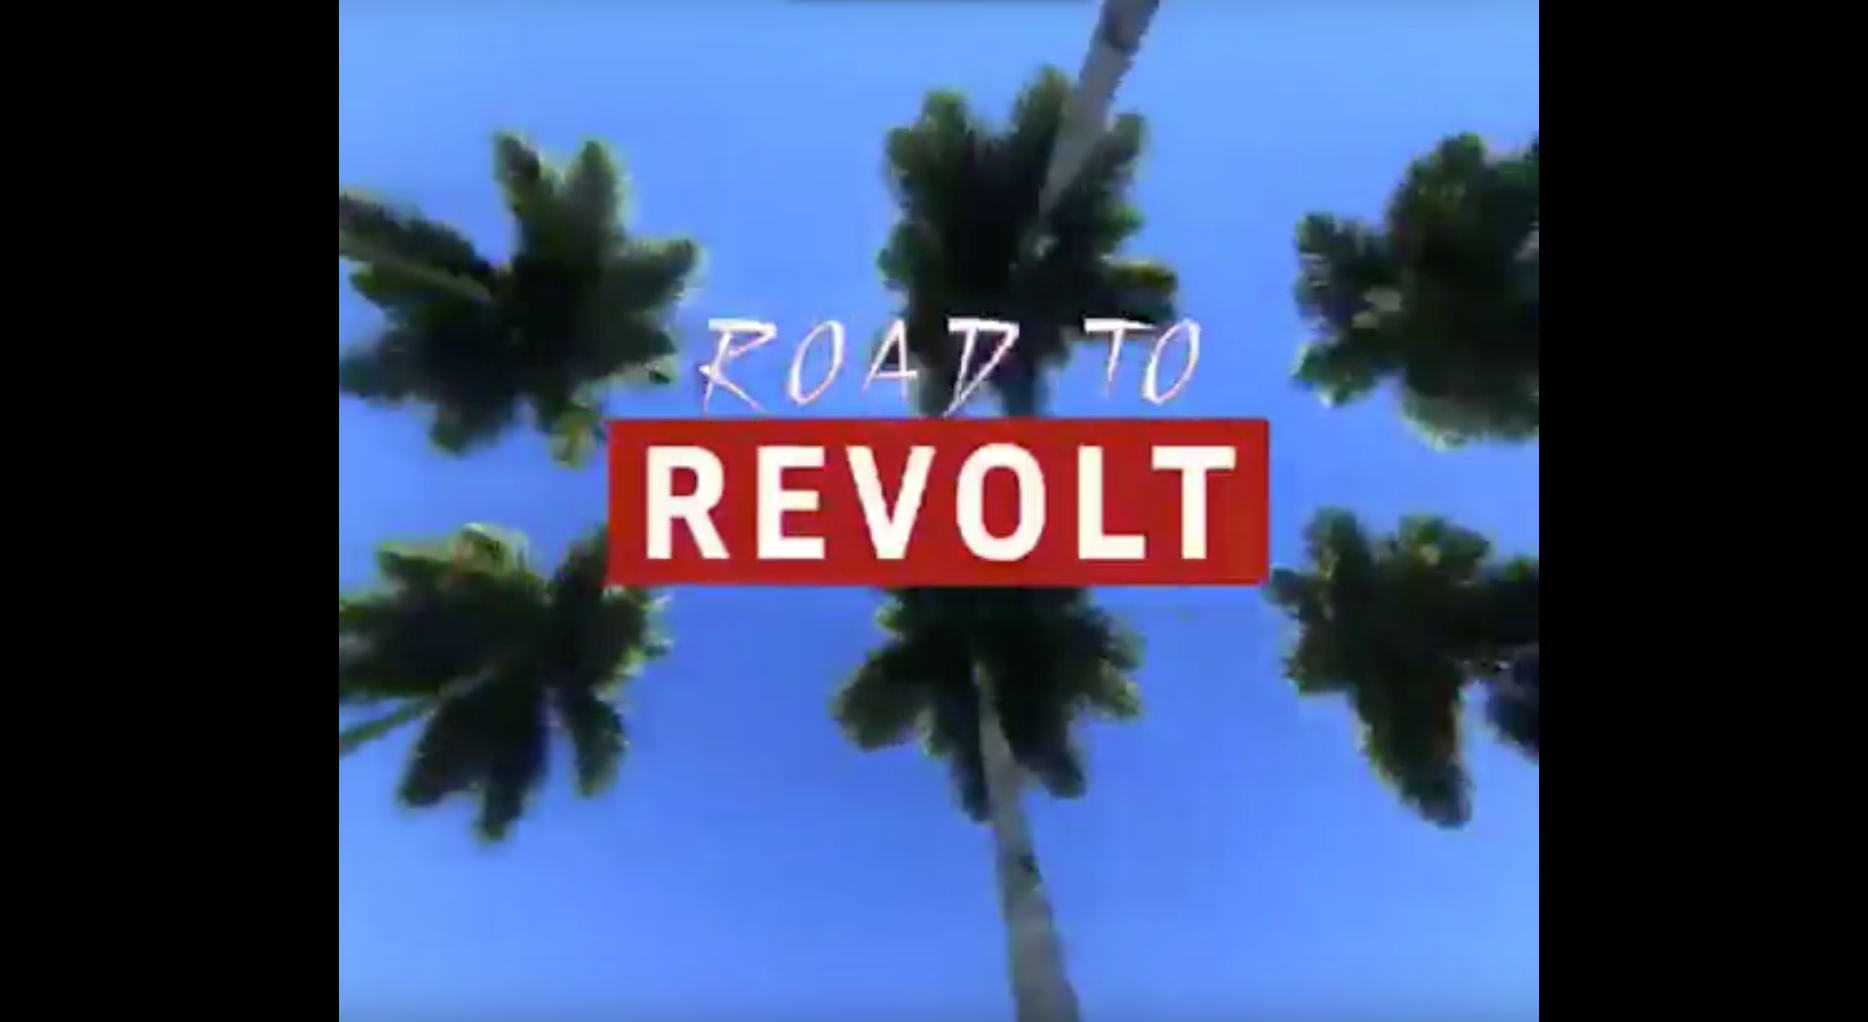 road-to-revolt-2